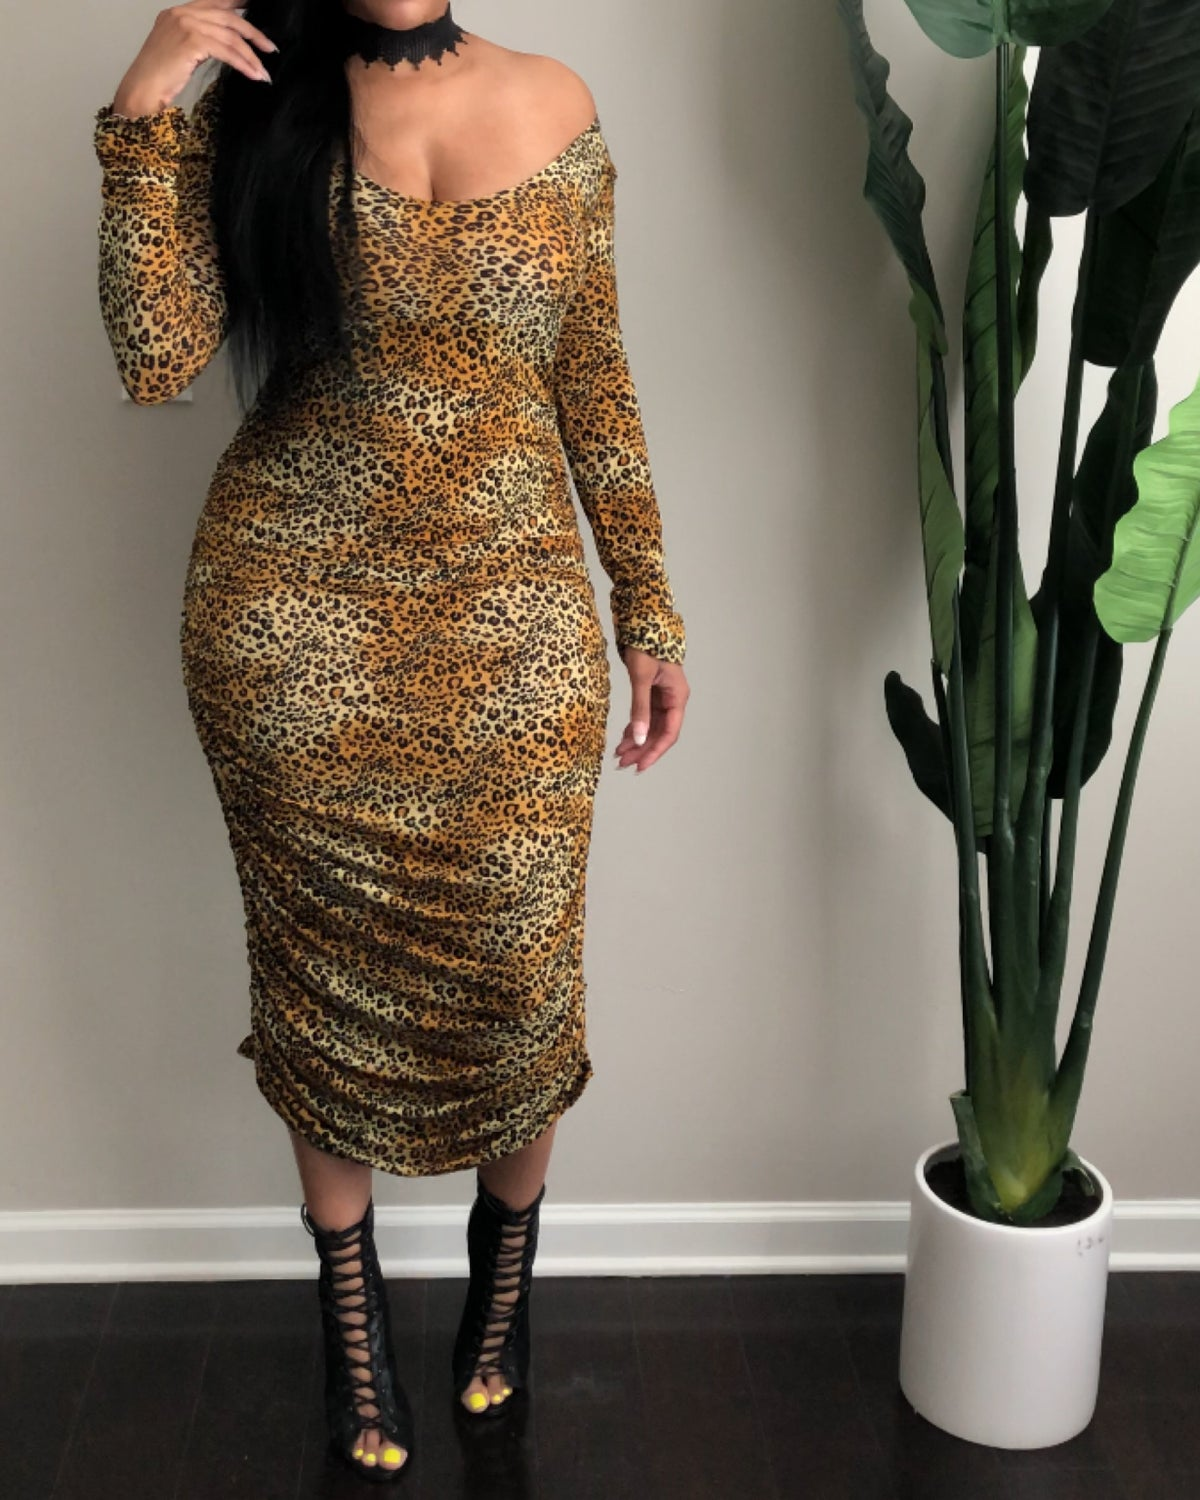 Cheetah Lady dress